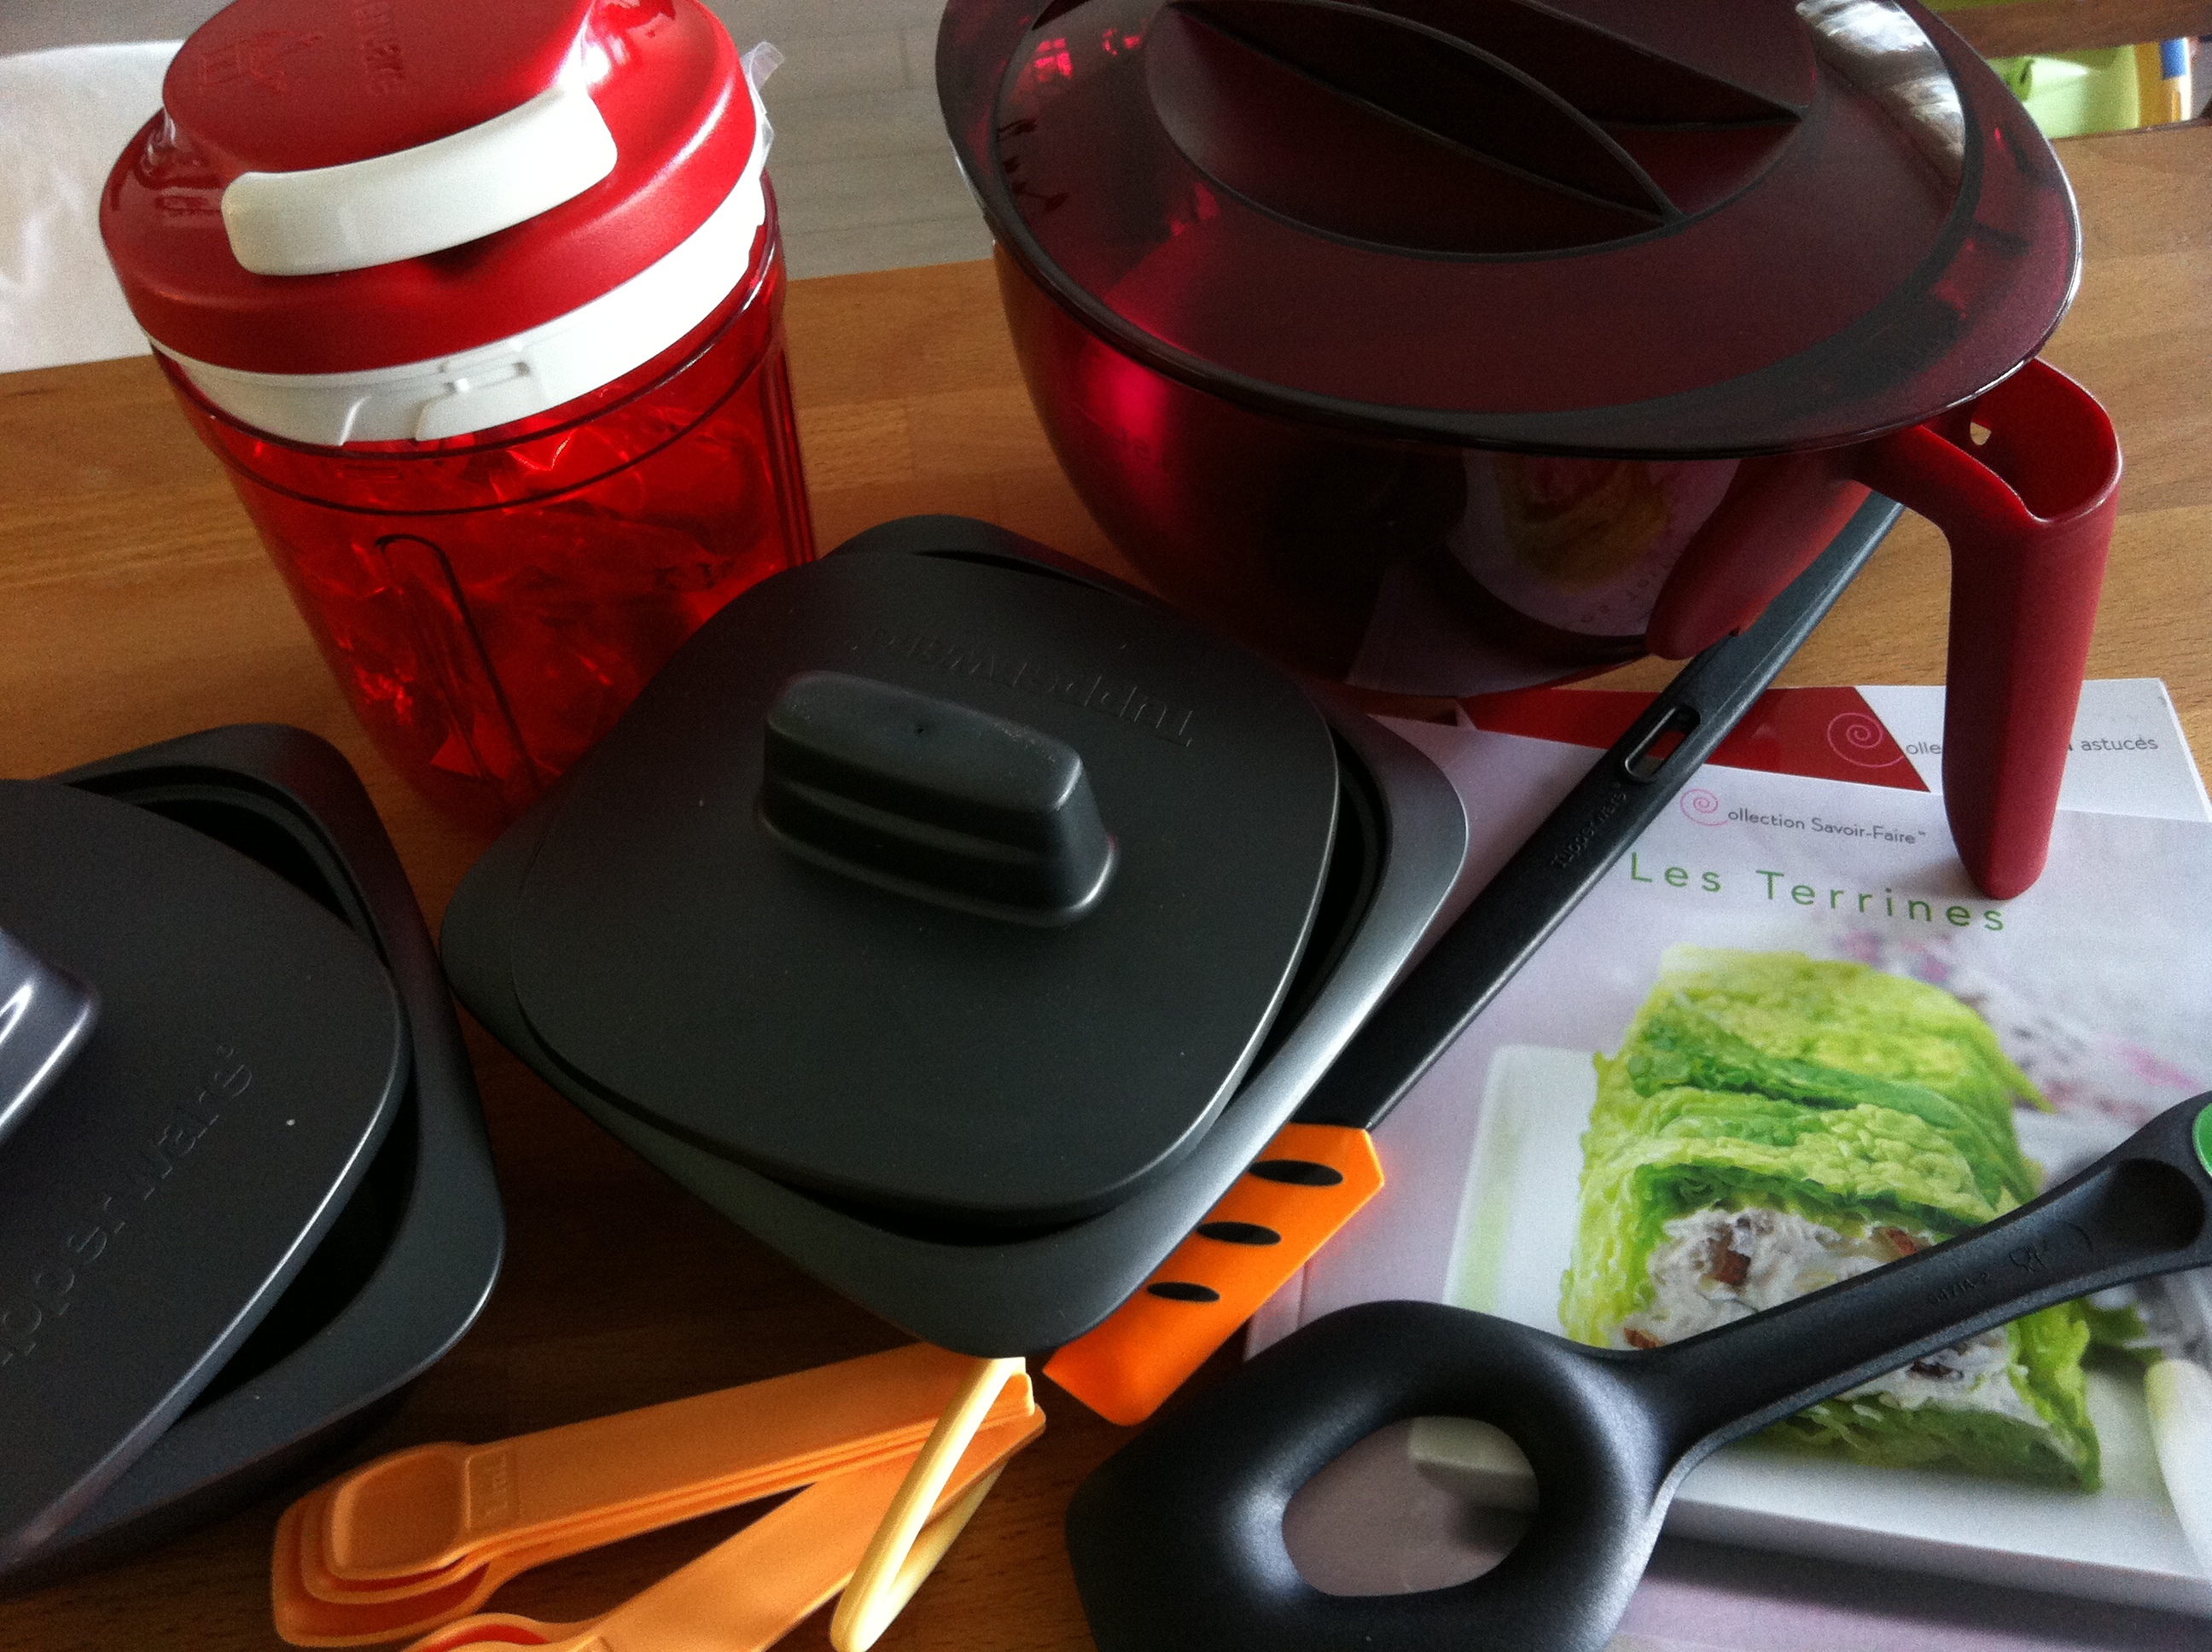 Kit tupperware concours 50ans